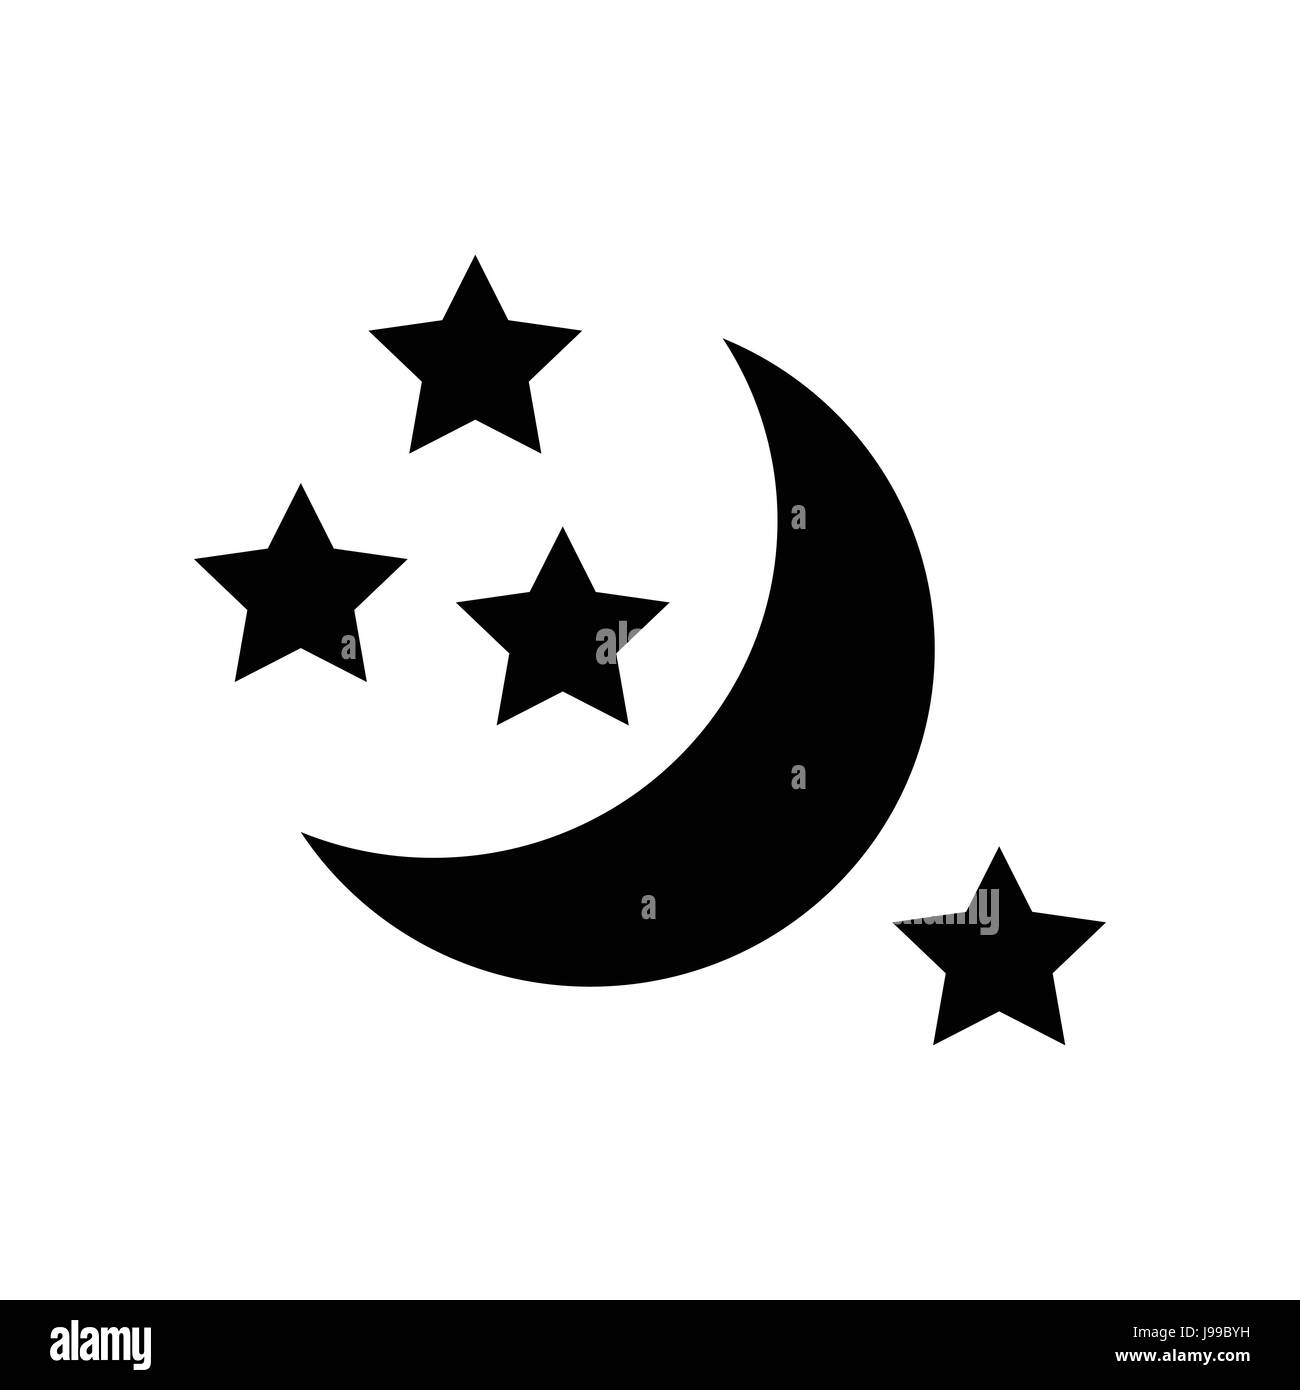 Star And Crescent Black And White Stock Photos Images Alamy